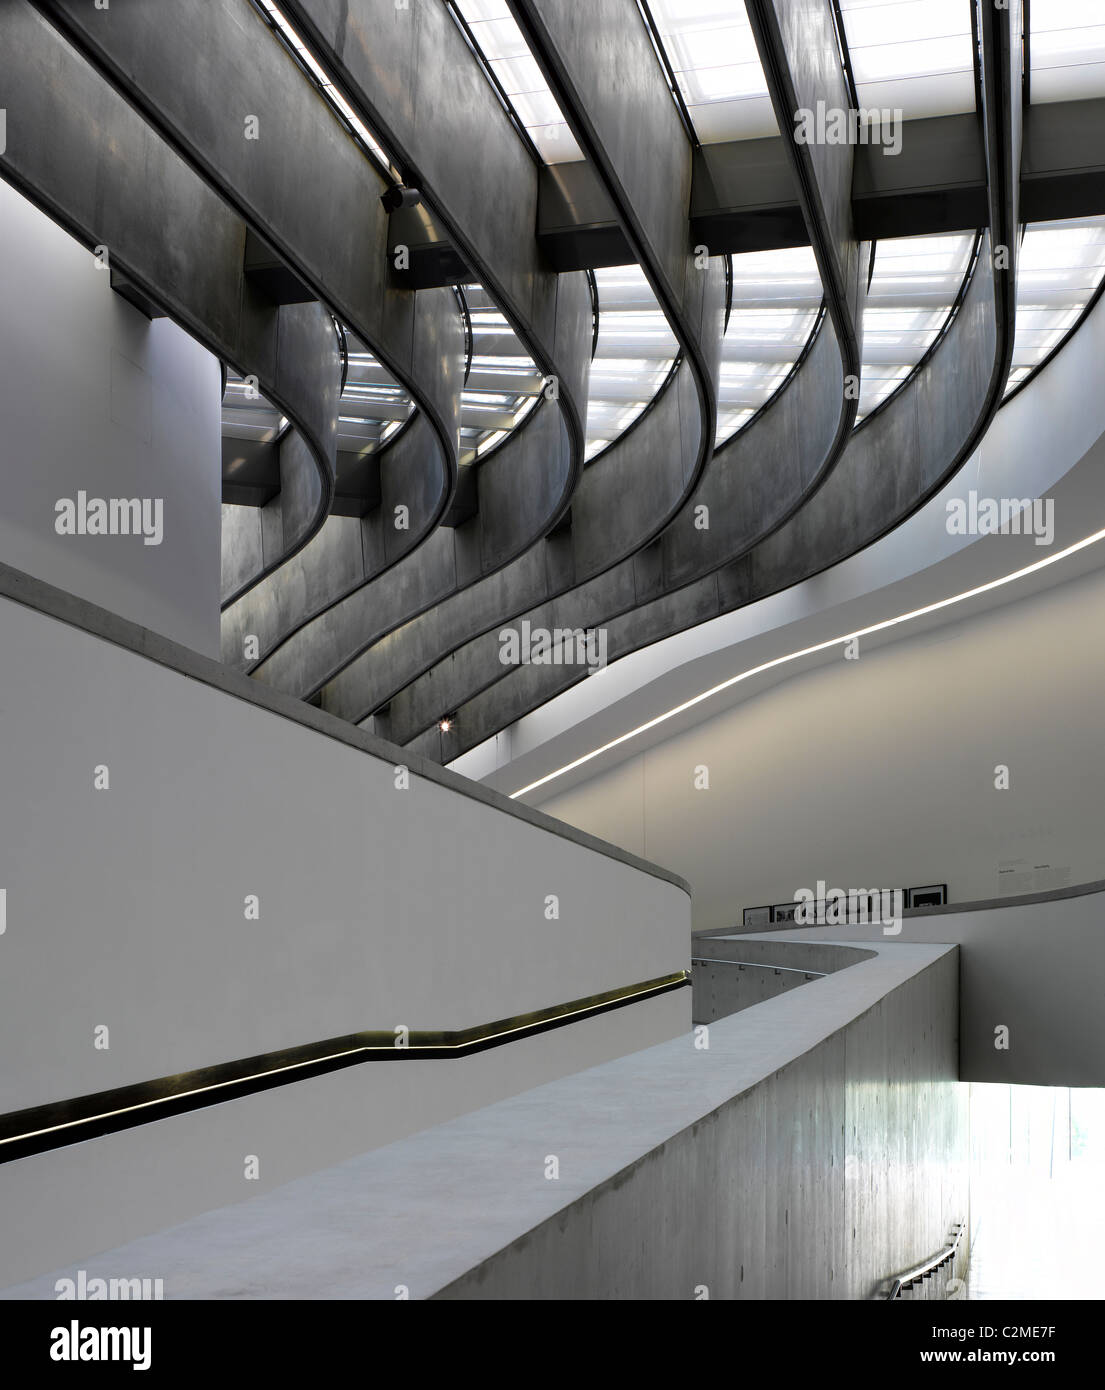 Architectural forms at the MAXXI, National Museum of 21st Century Arts, Rome. - Stock Image